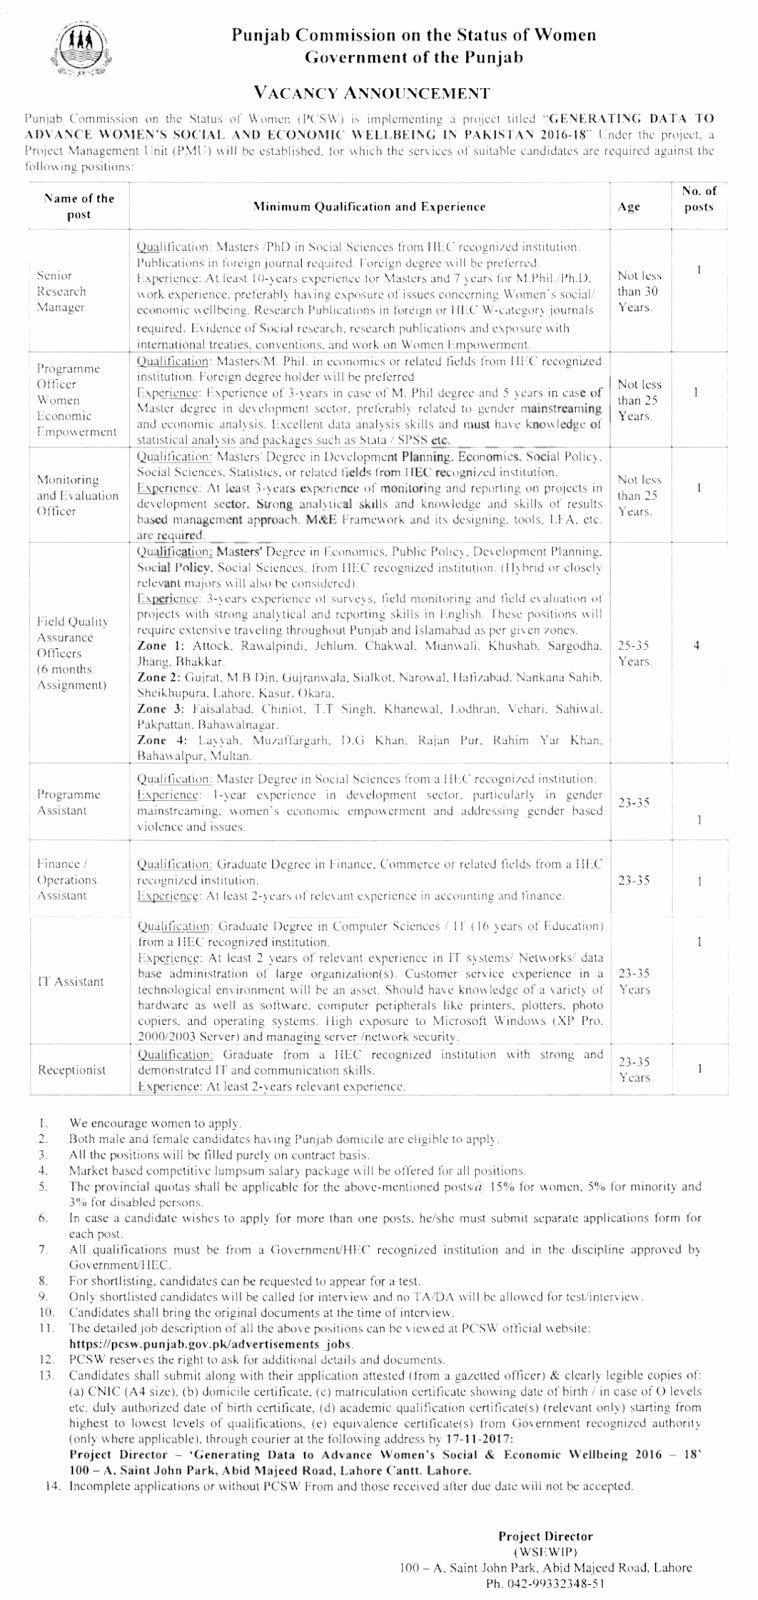 Jobs Punjab Commission On The Status Of Women November 2017